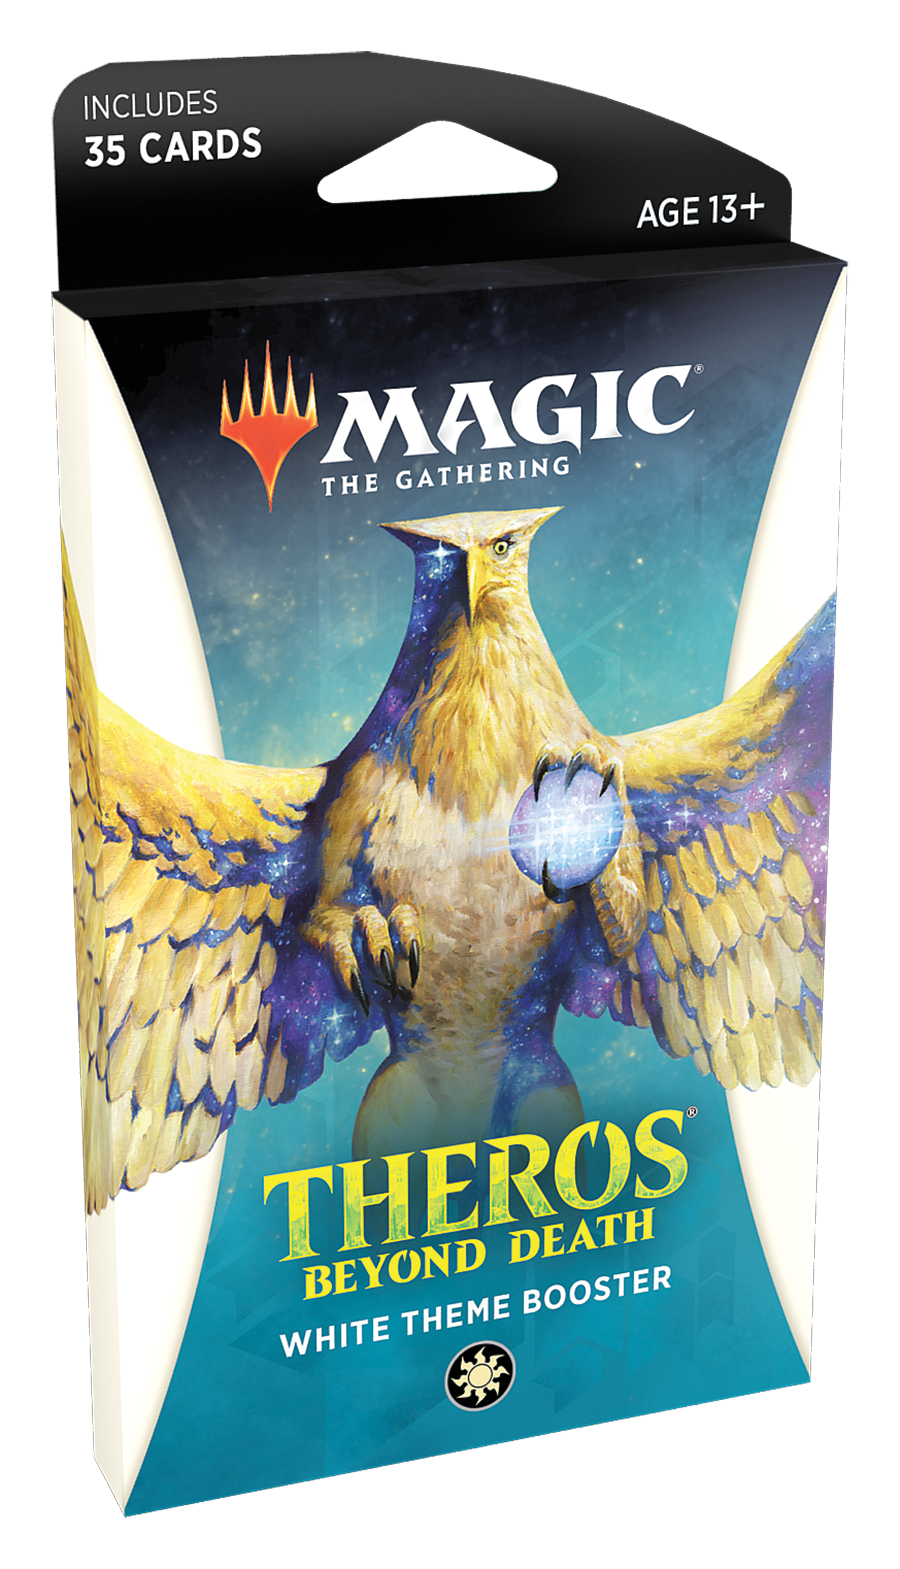 Theros Beyond Death Theme Booster - White (Ships Jan 24)